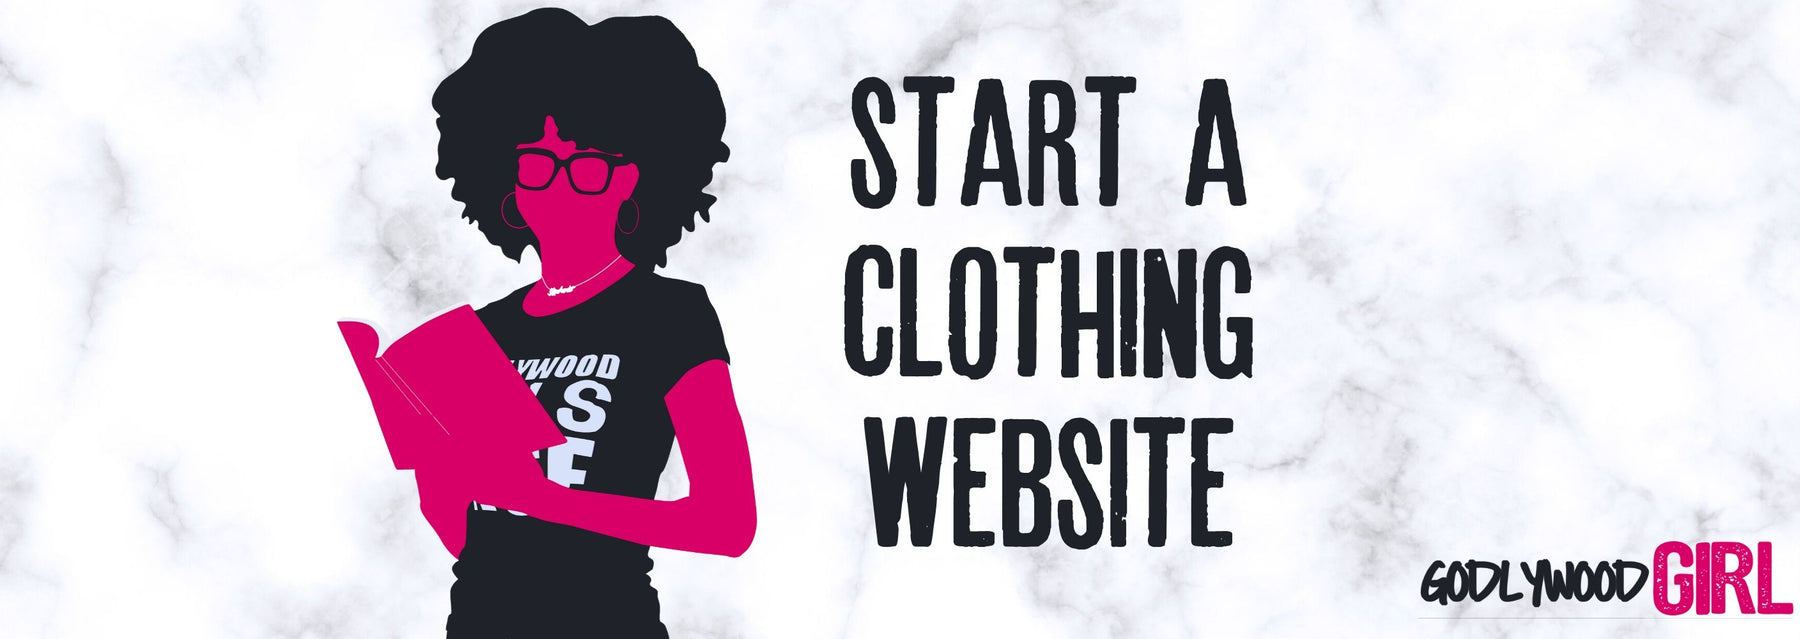 HOW TO START A CLOTHING WEBSITE IN 2019 (CHRISTIAN ENTREPRENEUR SERIES)